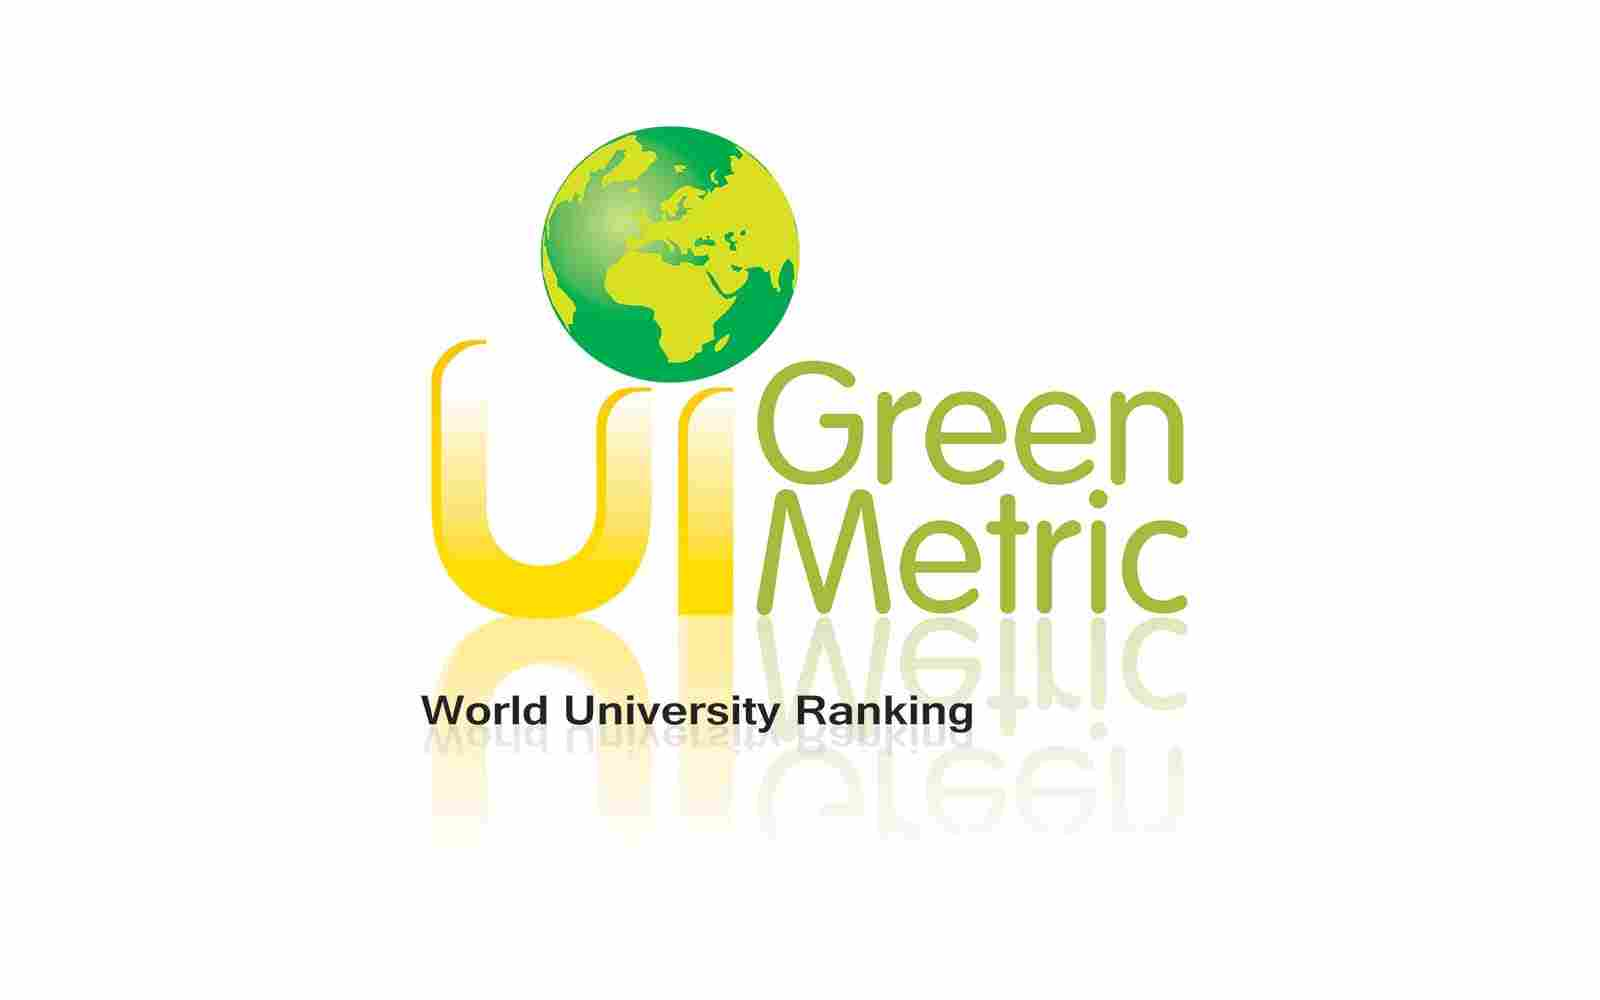 RTU has been recognized as one of the top 60 greenest universities in the world